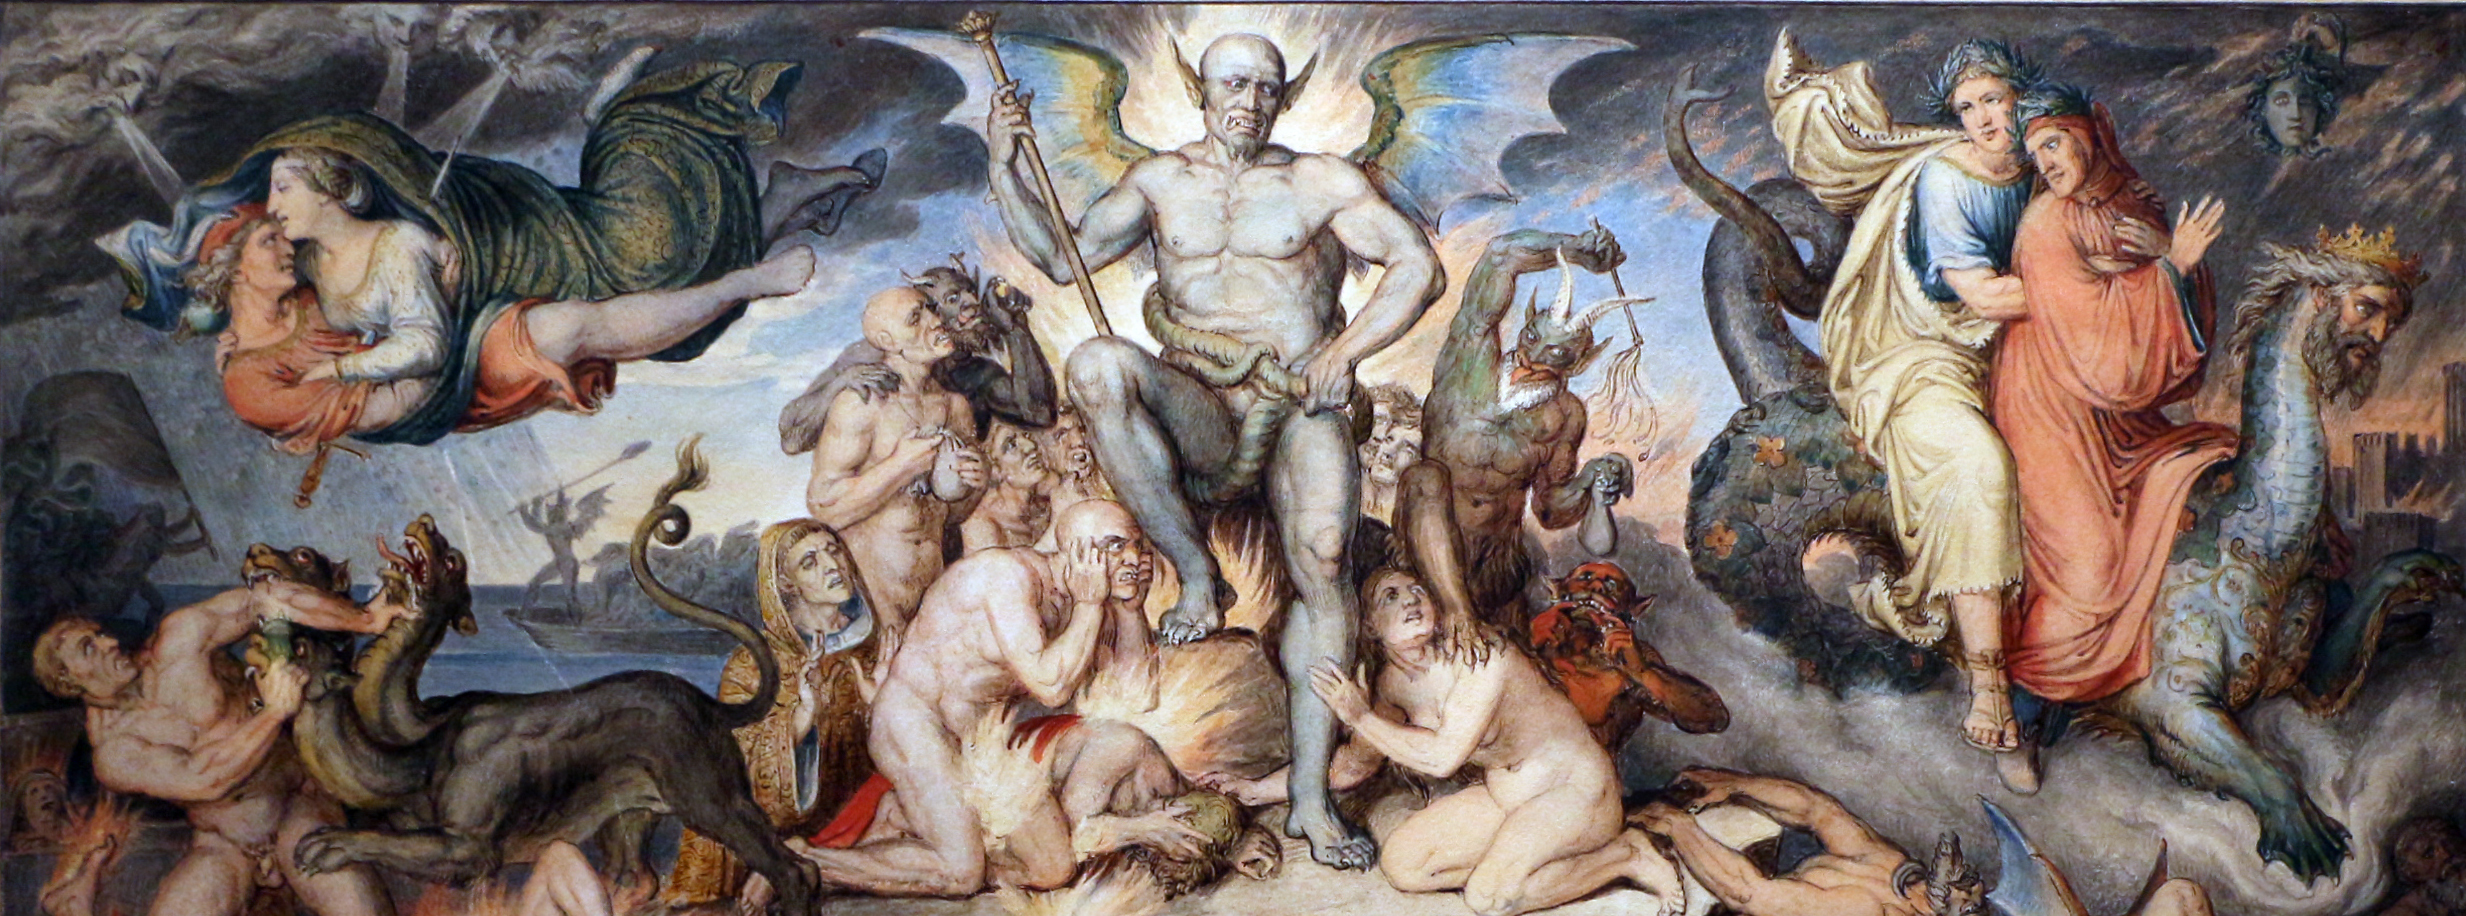 Demonology: A-Z List of Demon Names, Devils, & Evil Spirits